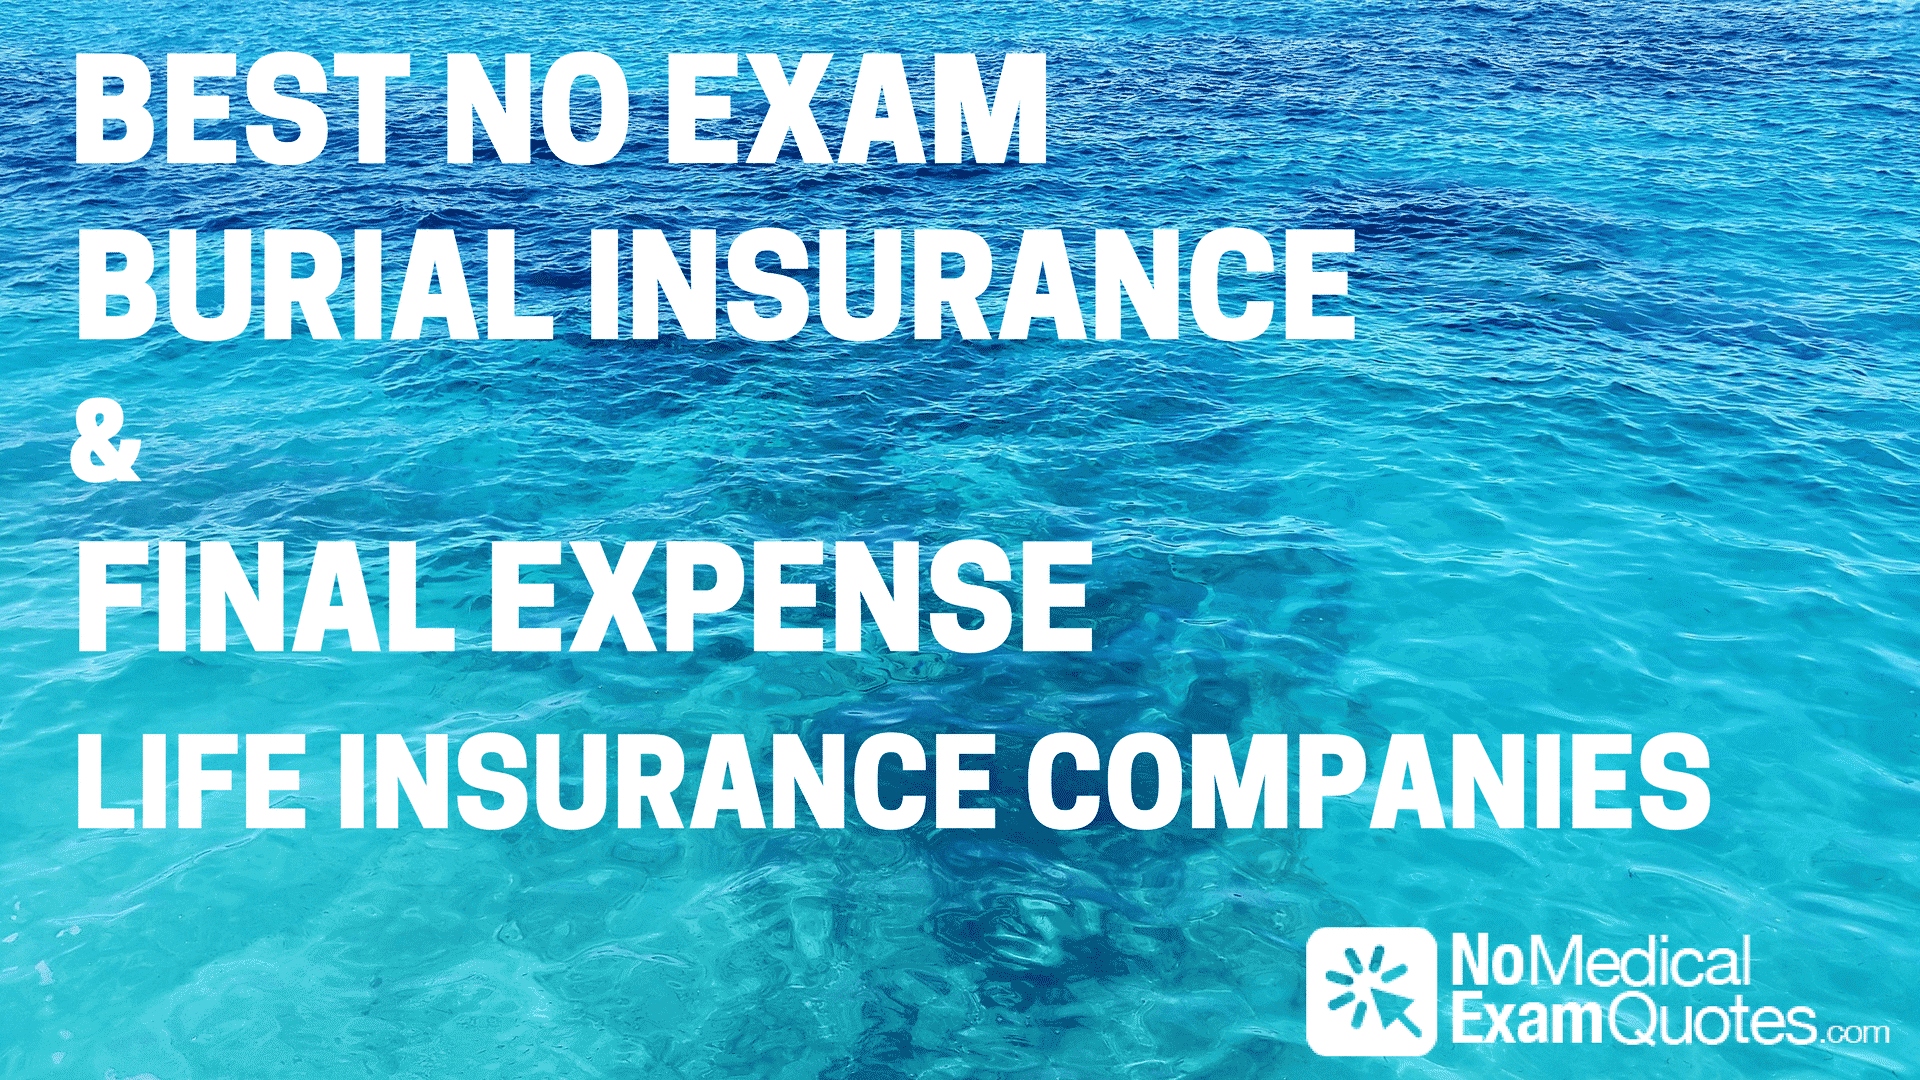 Burial Insurance & Final Expense Life Insurance